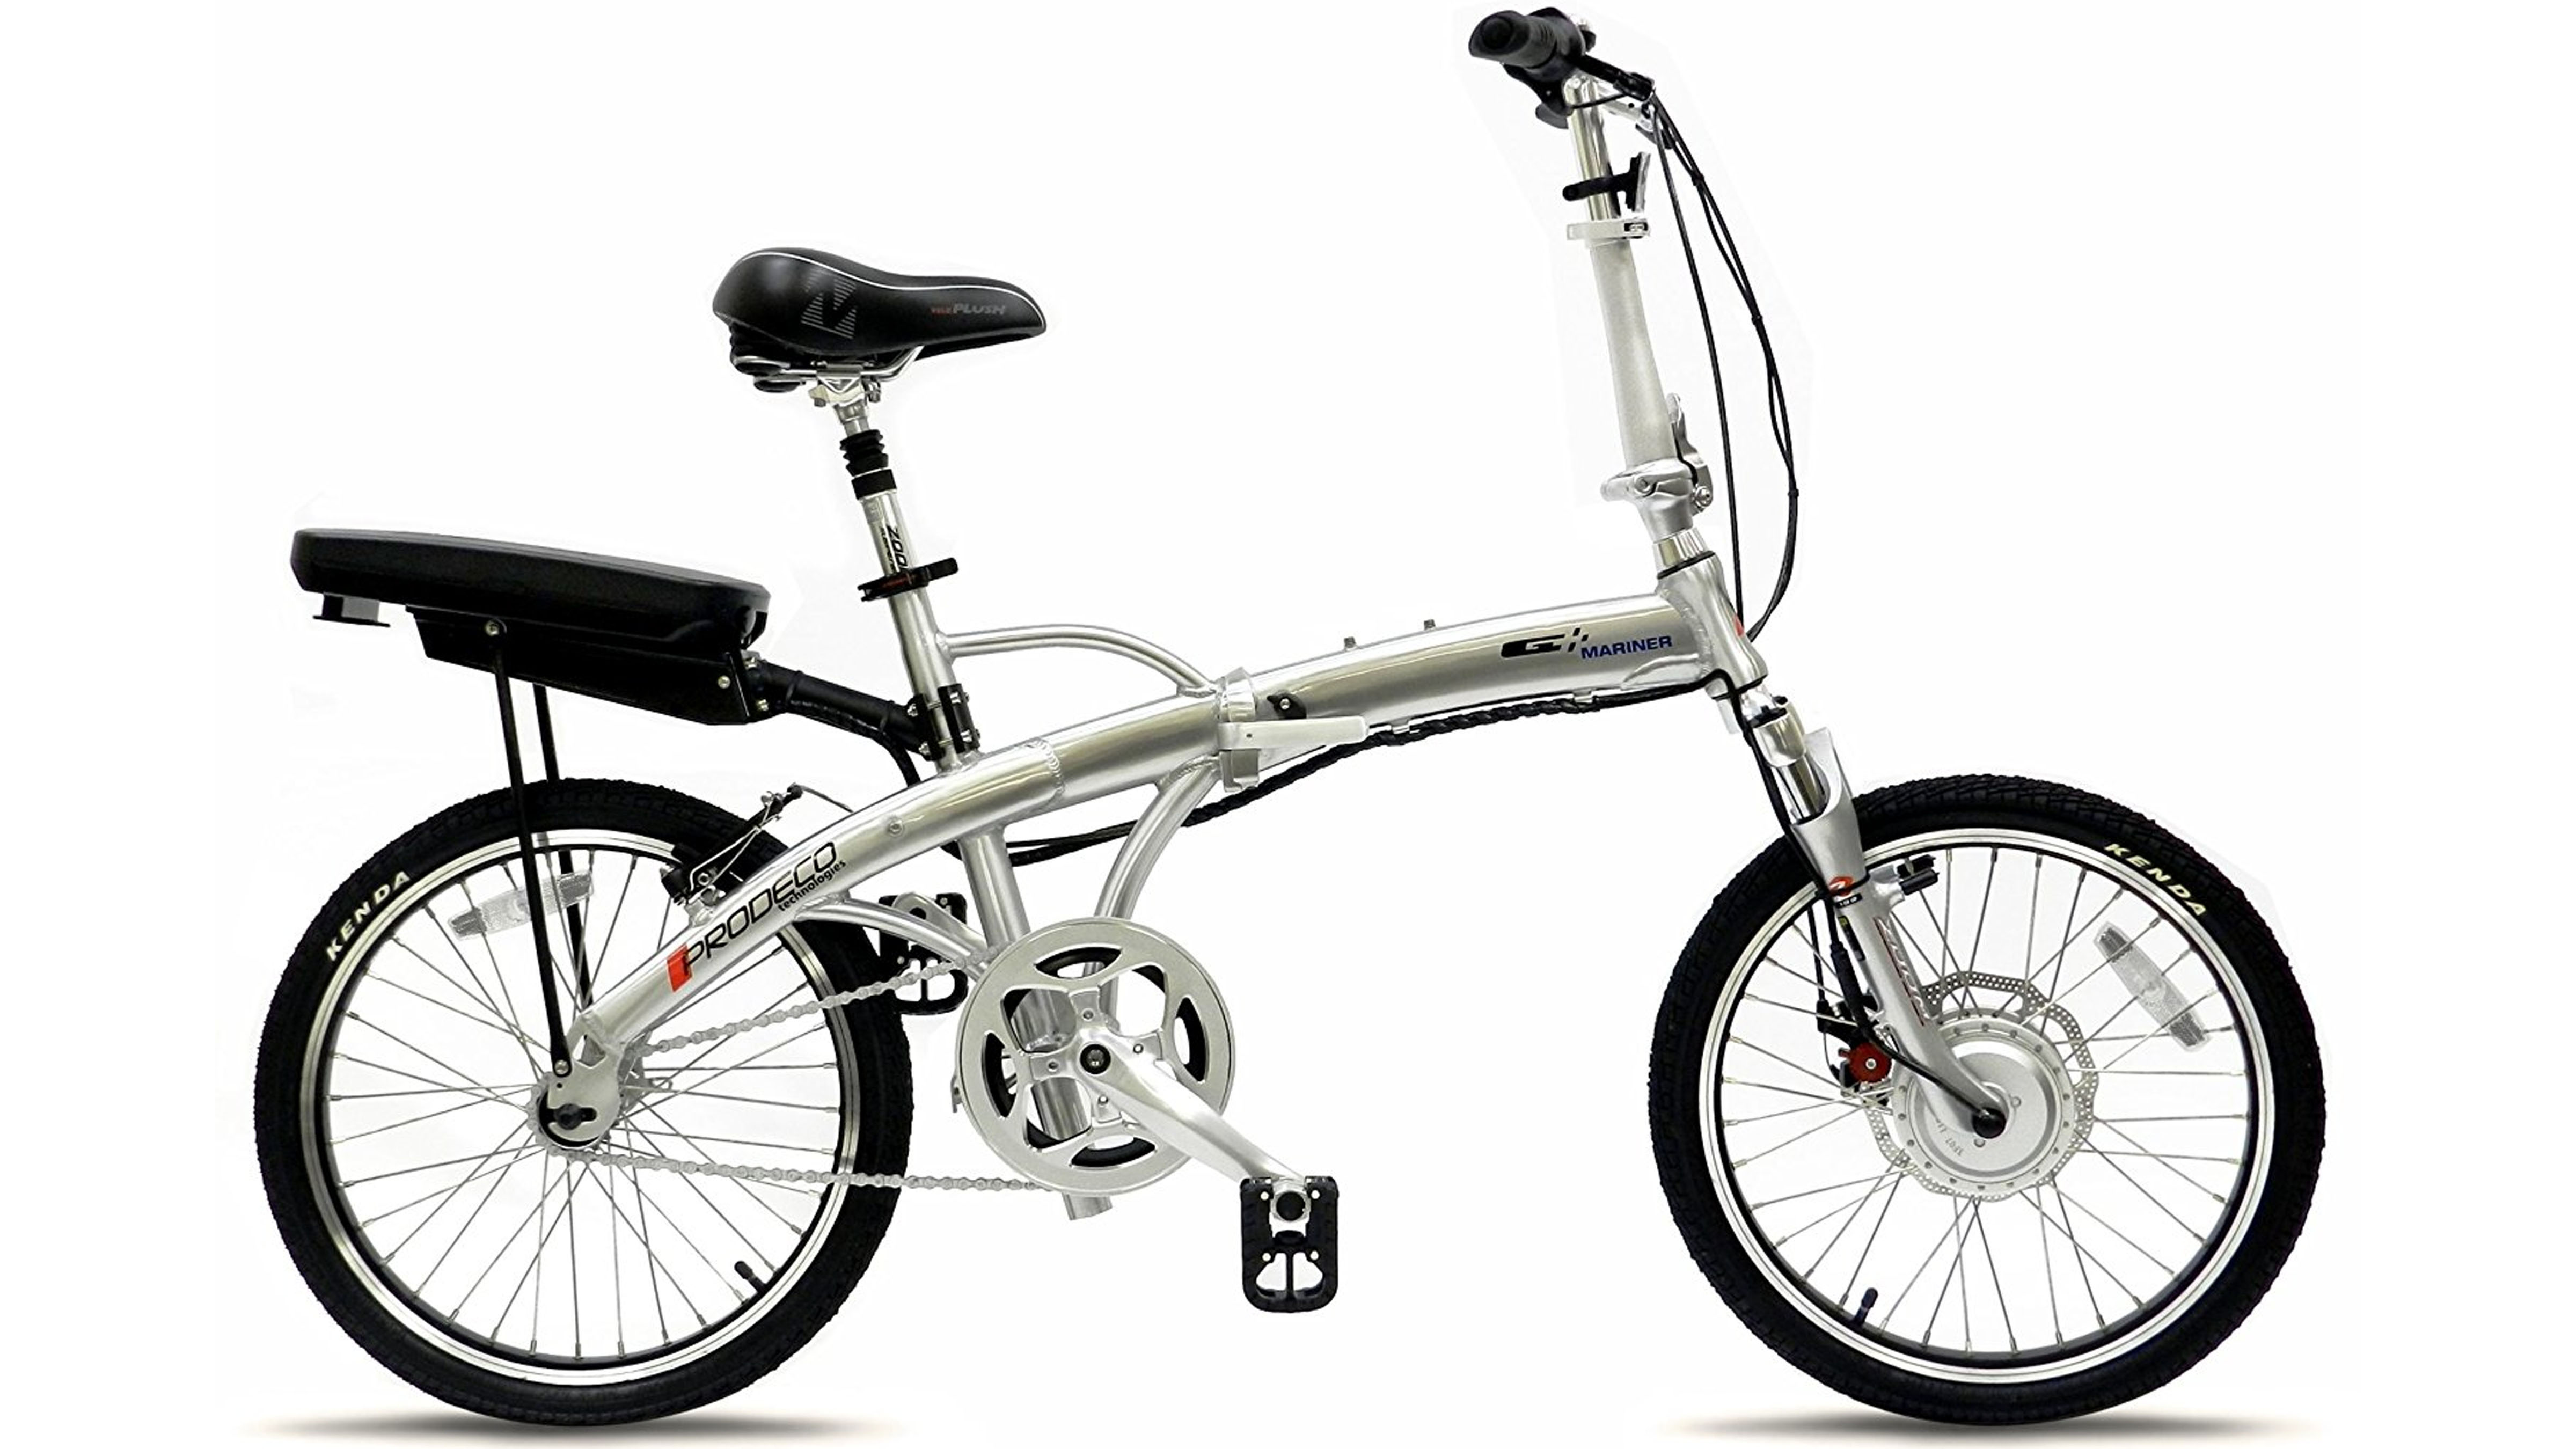 The Best Electric Bike Prices And Deals For Cyber Monday